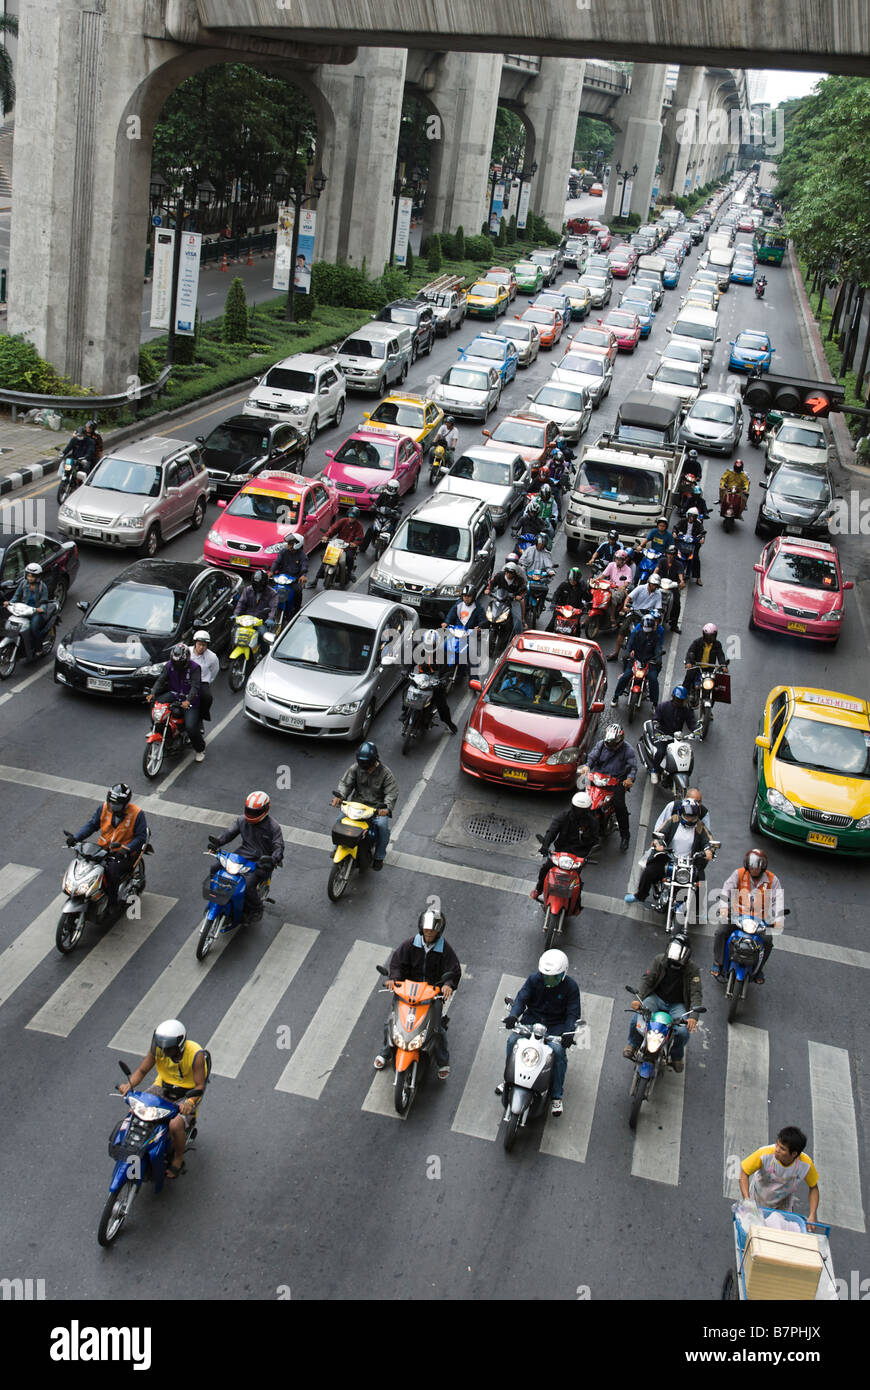 Scooters getting a head start at traffic lights in heavy congestiion Pathumwan district in central Bangkok Thailand - Stock Image